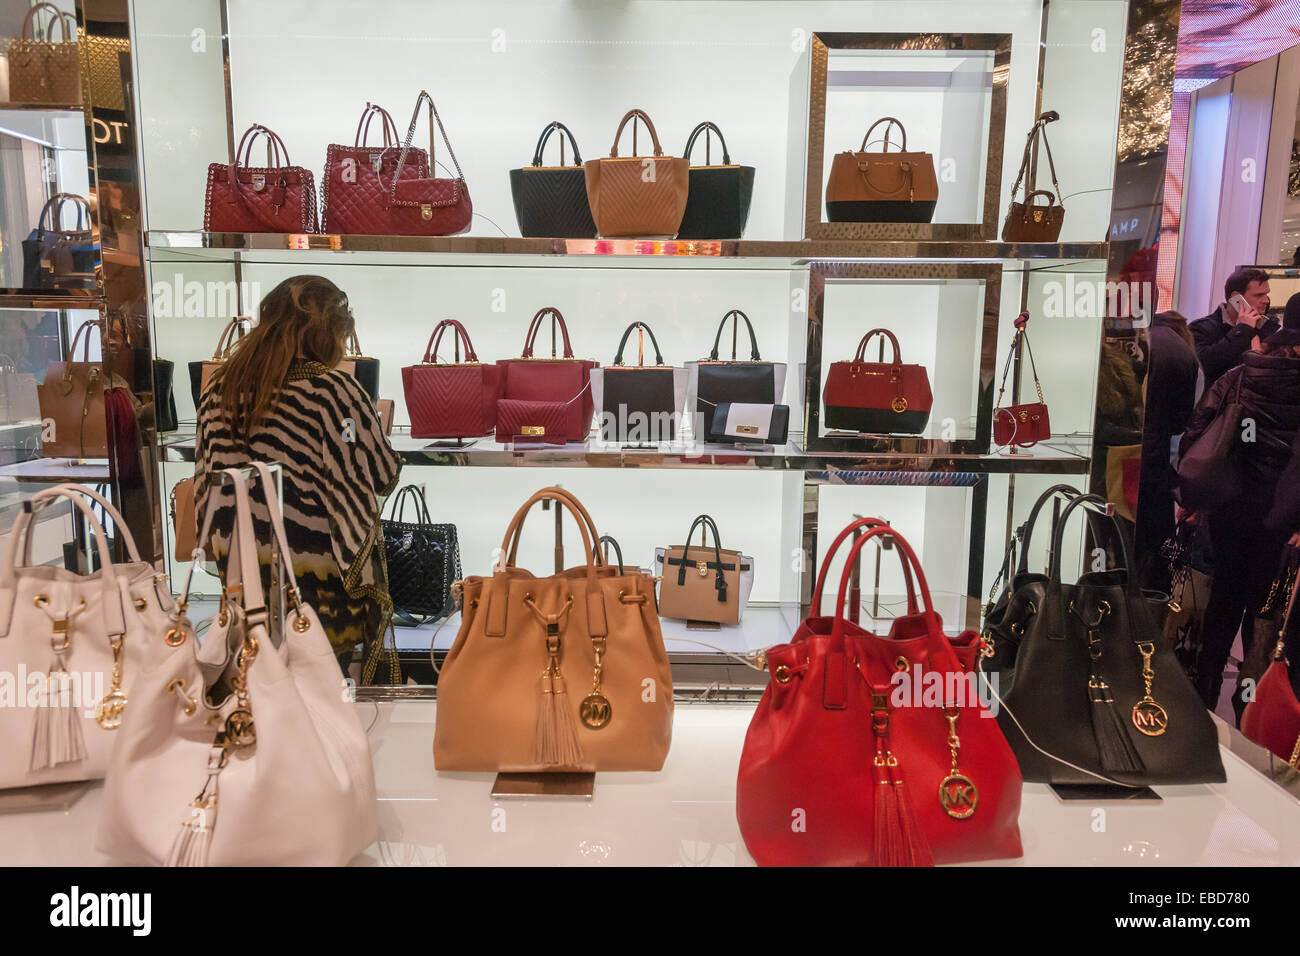 cc247f8528a8 A shopper browses Michael Kors handbags in the Macy's Herald Square  flagship store in New York looking for bargains on the day after  Thanksgiving, ...